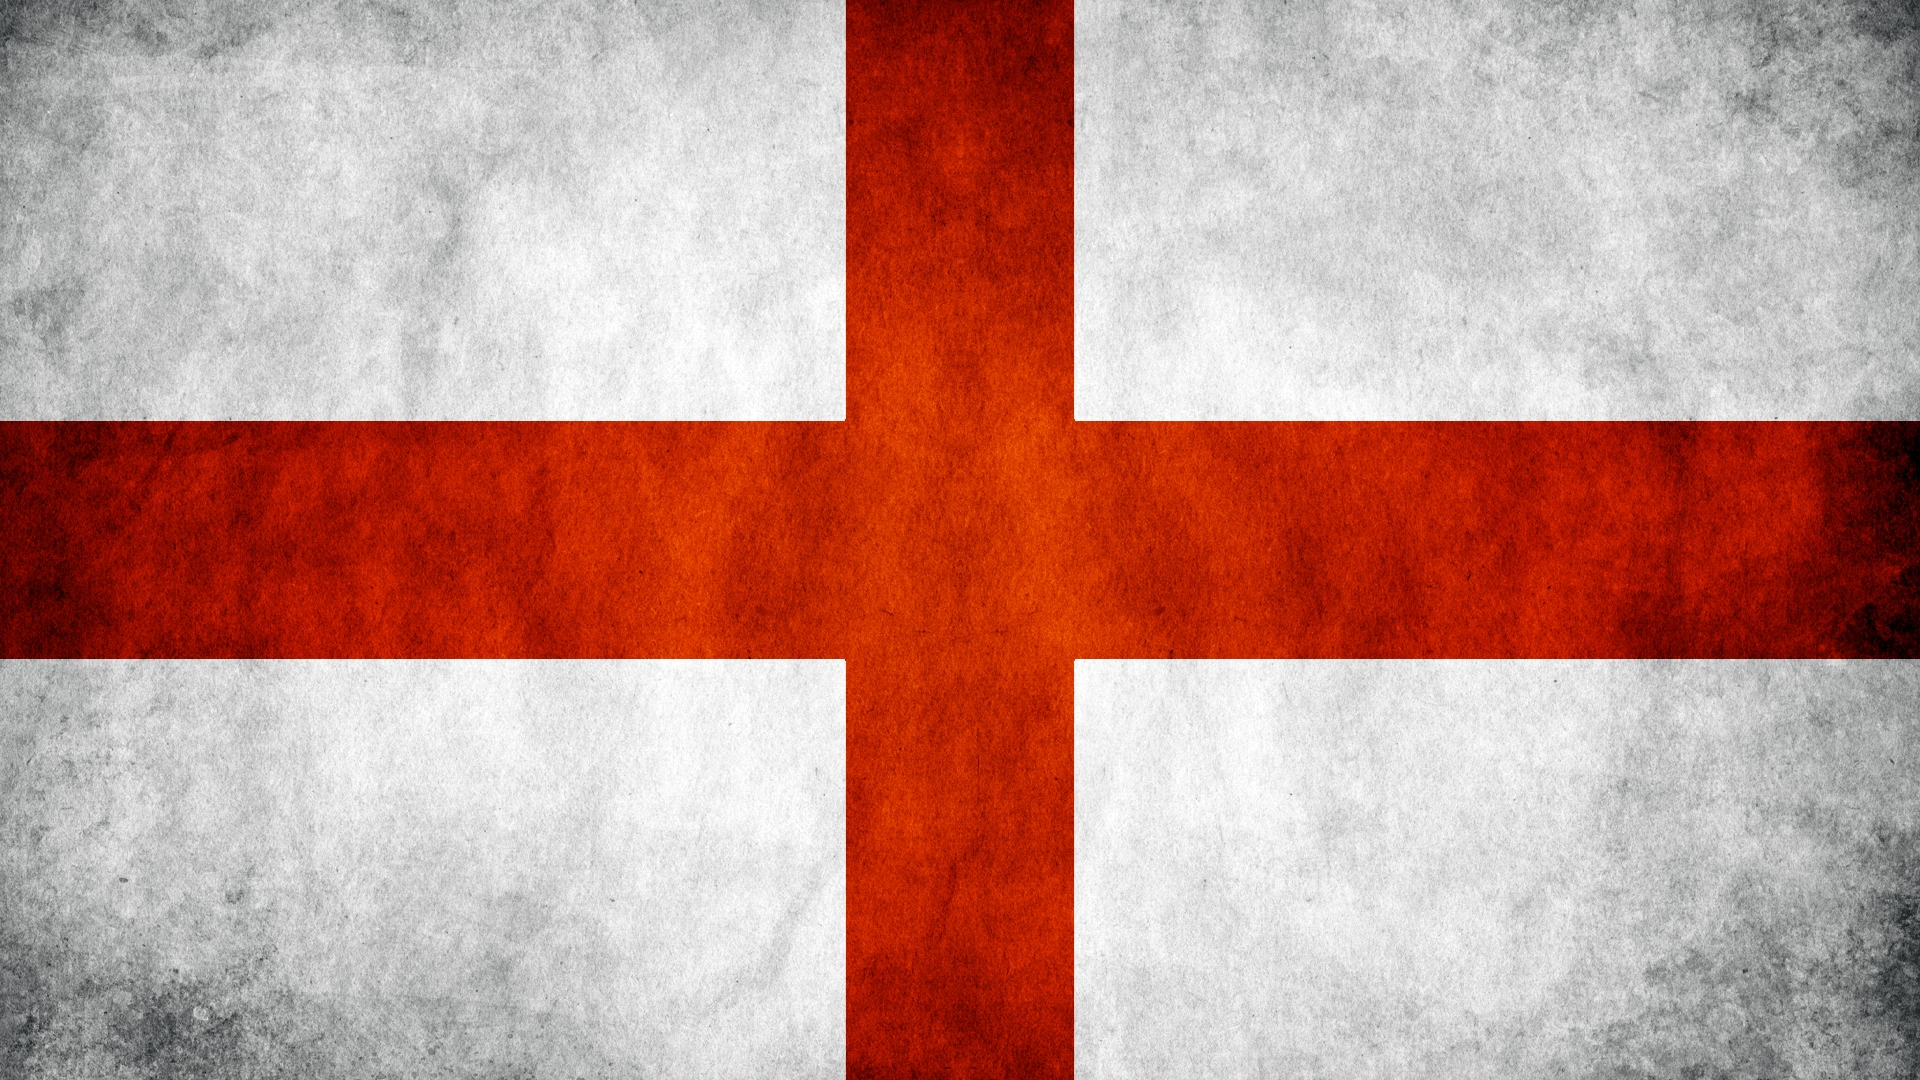 Manchester United Iphone Wallpaper Hd England Flag Wallpaper Hd Wallpapers